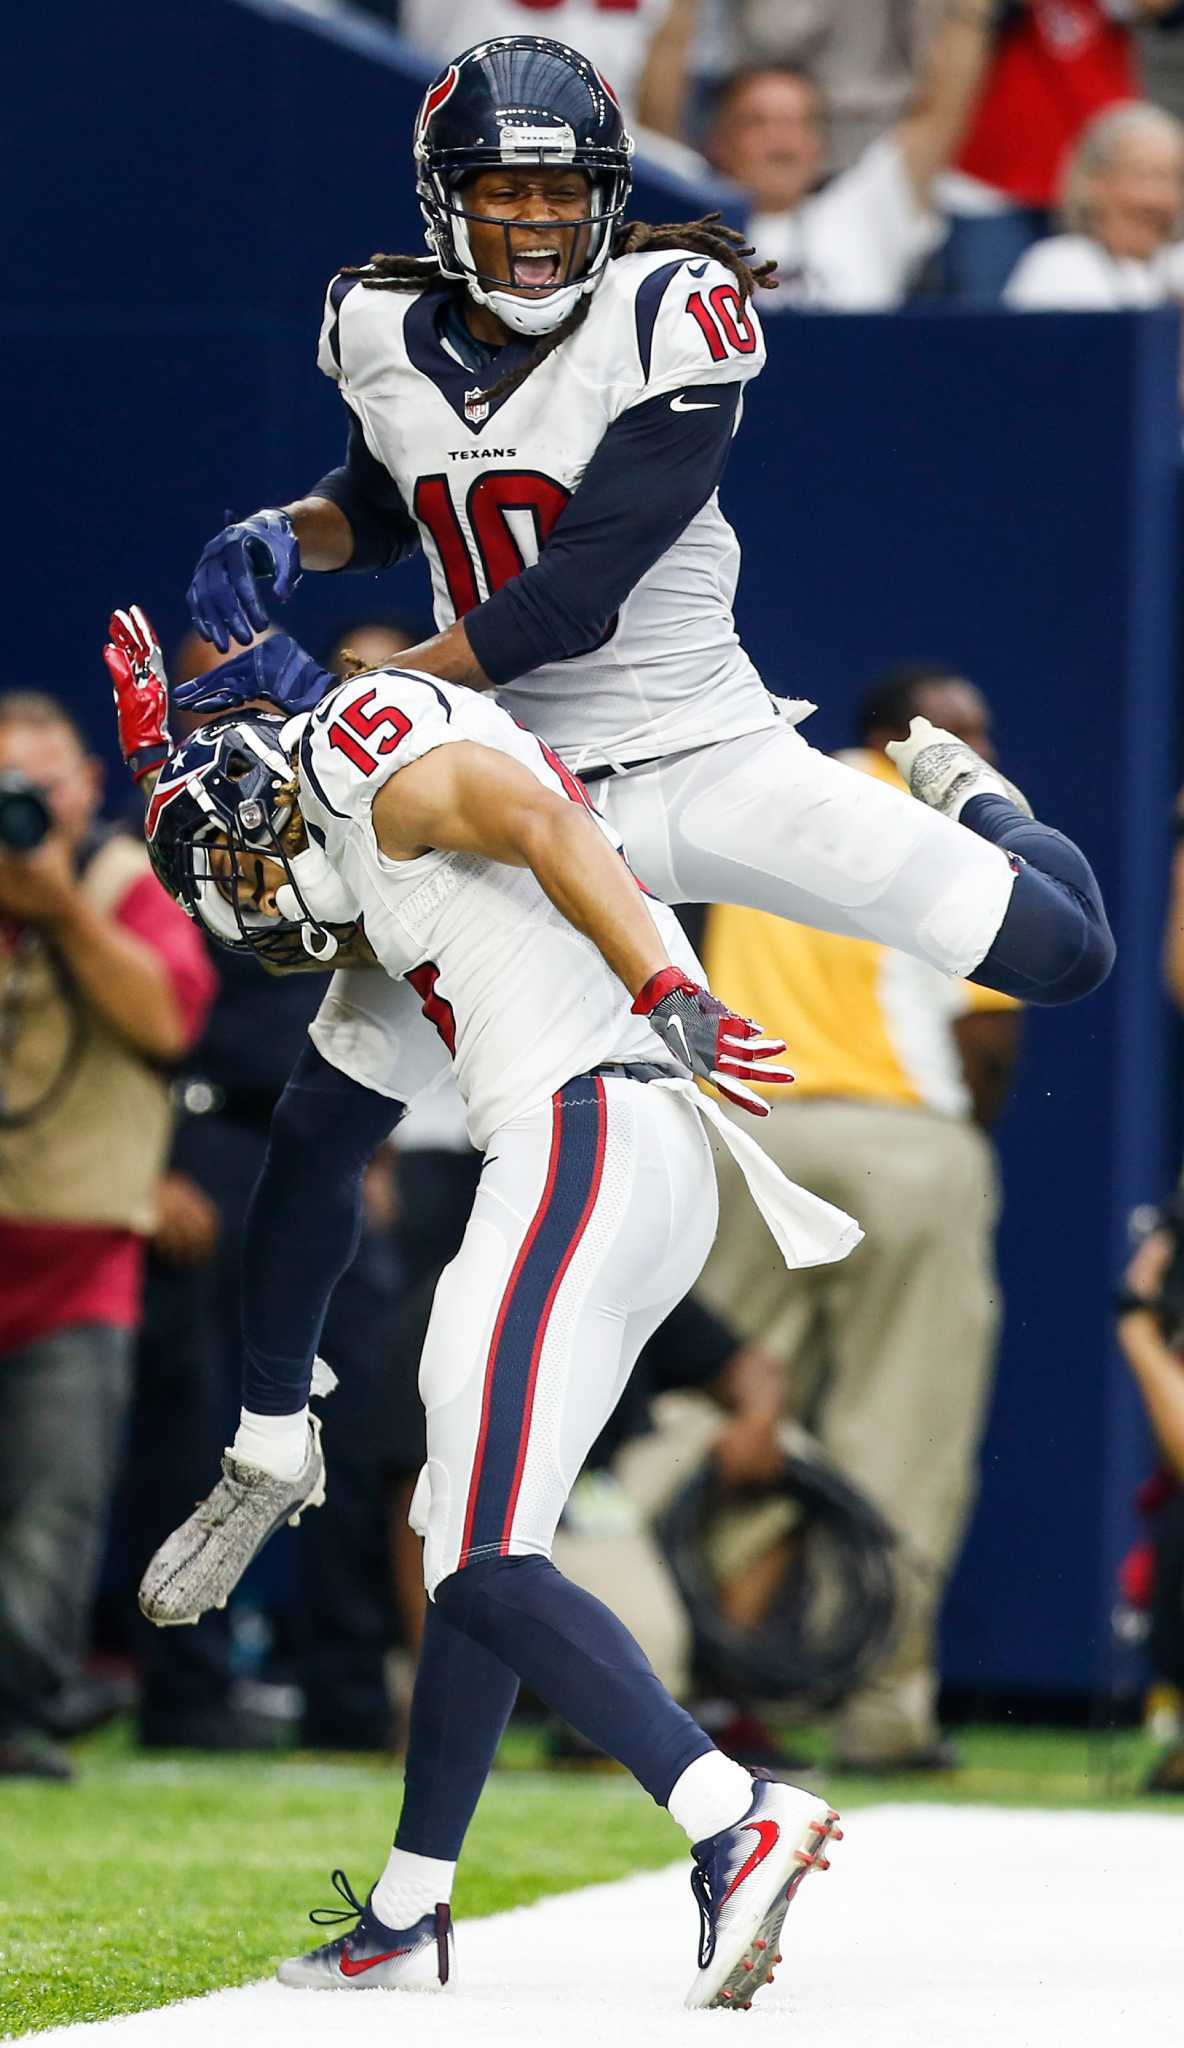 NFL fines Texans  DeAndre Hopkins for wearing Yeezy cleats - Houston  Chronicle 557ee4b3d